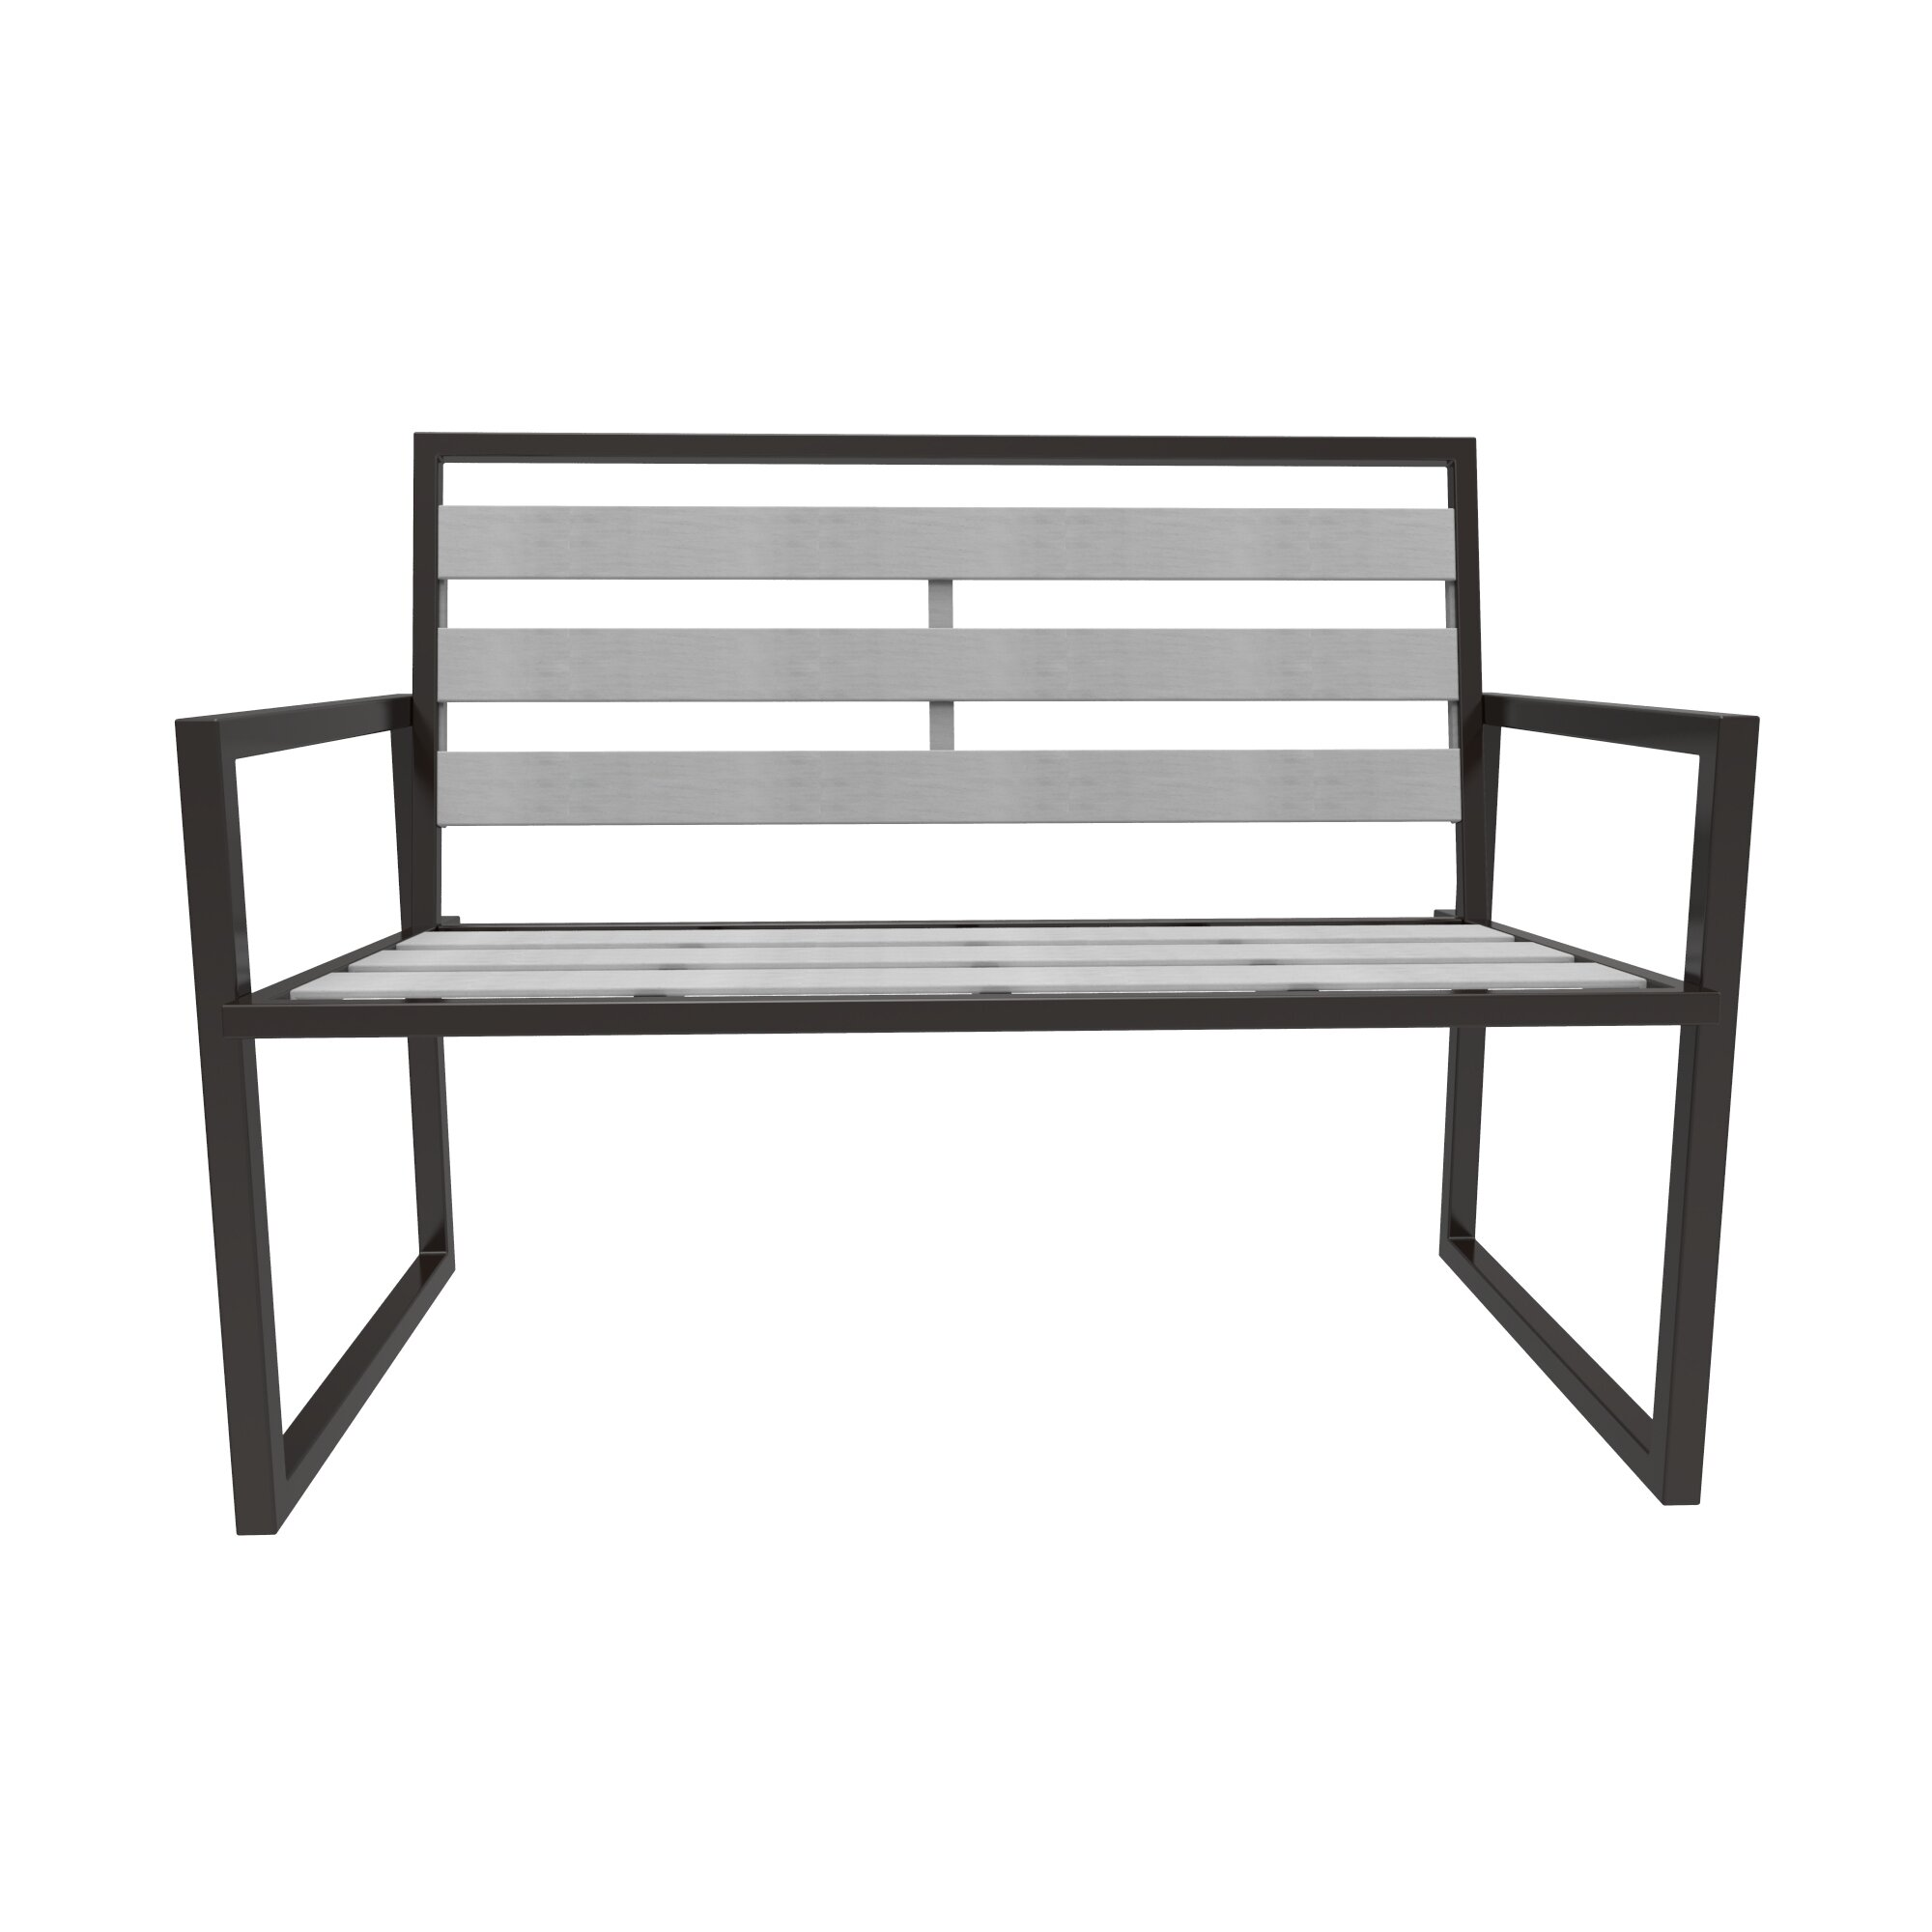 wood itm picnic outdoor patio fir garden bench white westwood seater sentinel home